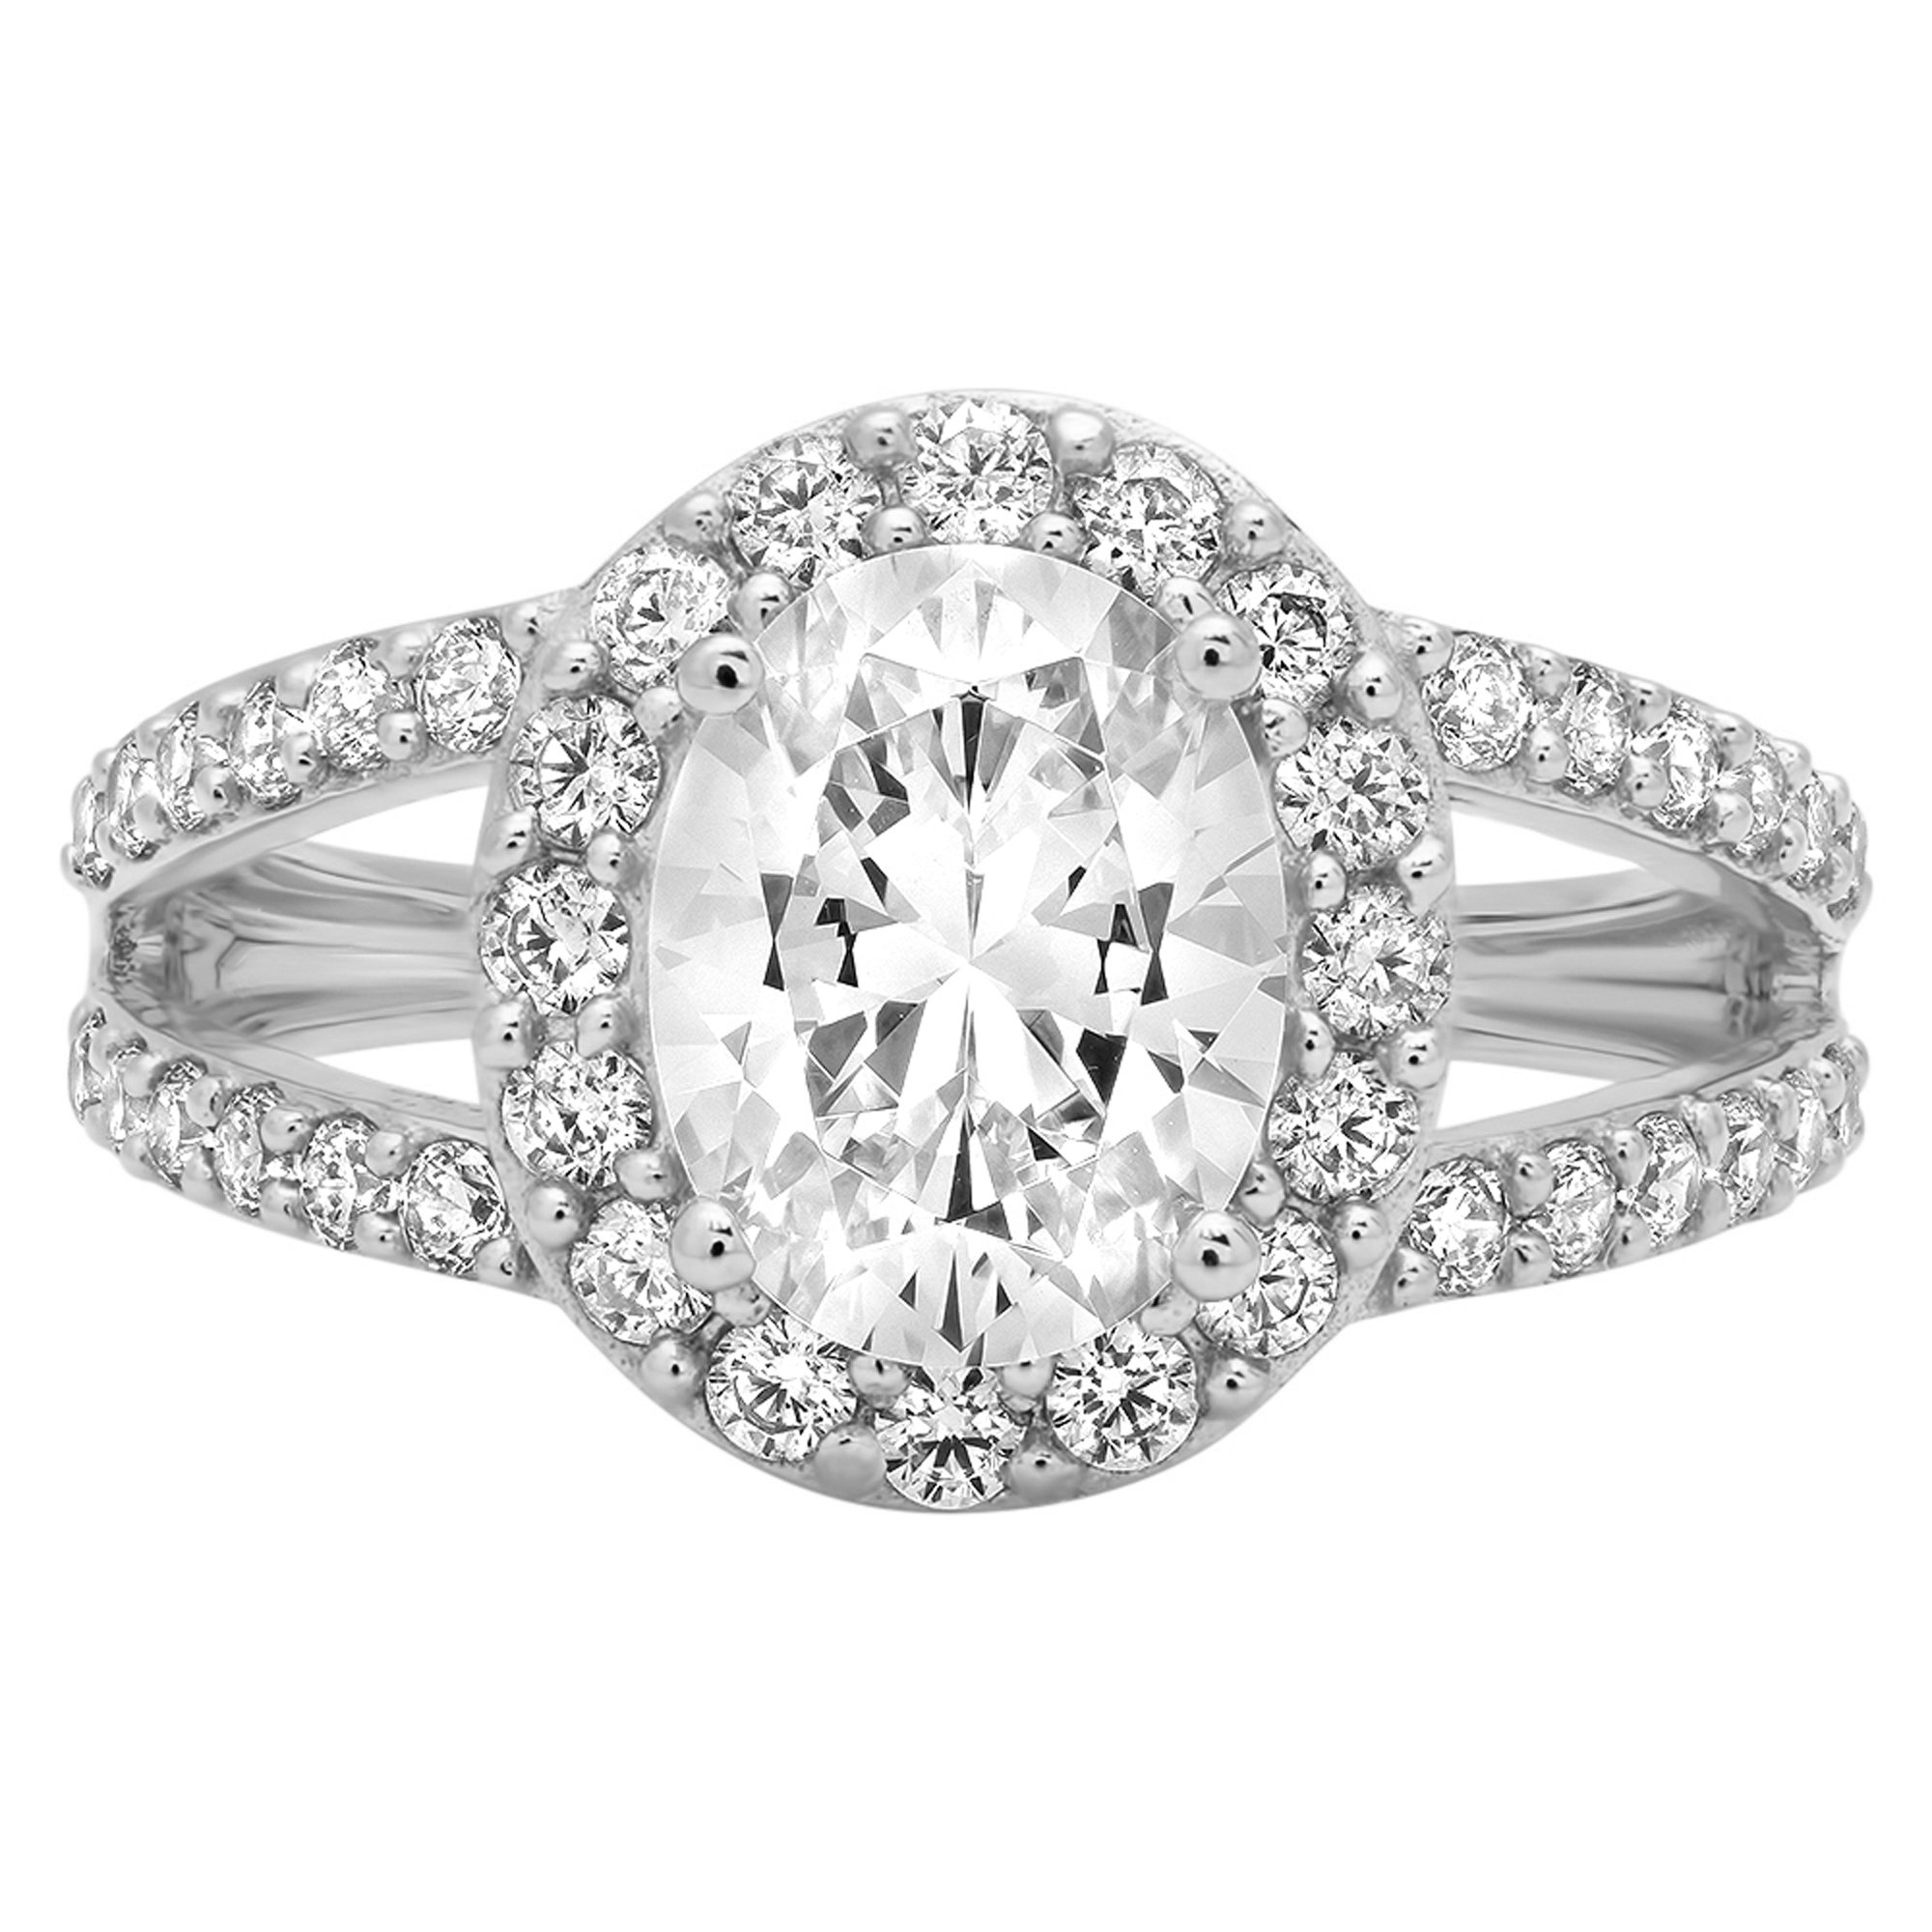 2.14ct Brilliant Oval Cut Designer Halo Solitaire Promise Anniversary Statement Engagement Wedding Bridal Ring For Women Solid 14k White Gold, 3.75